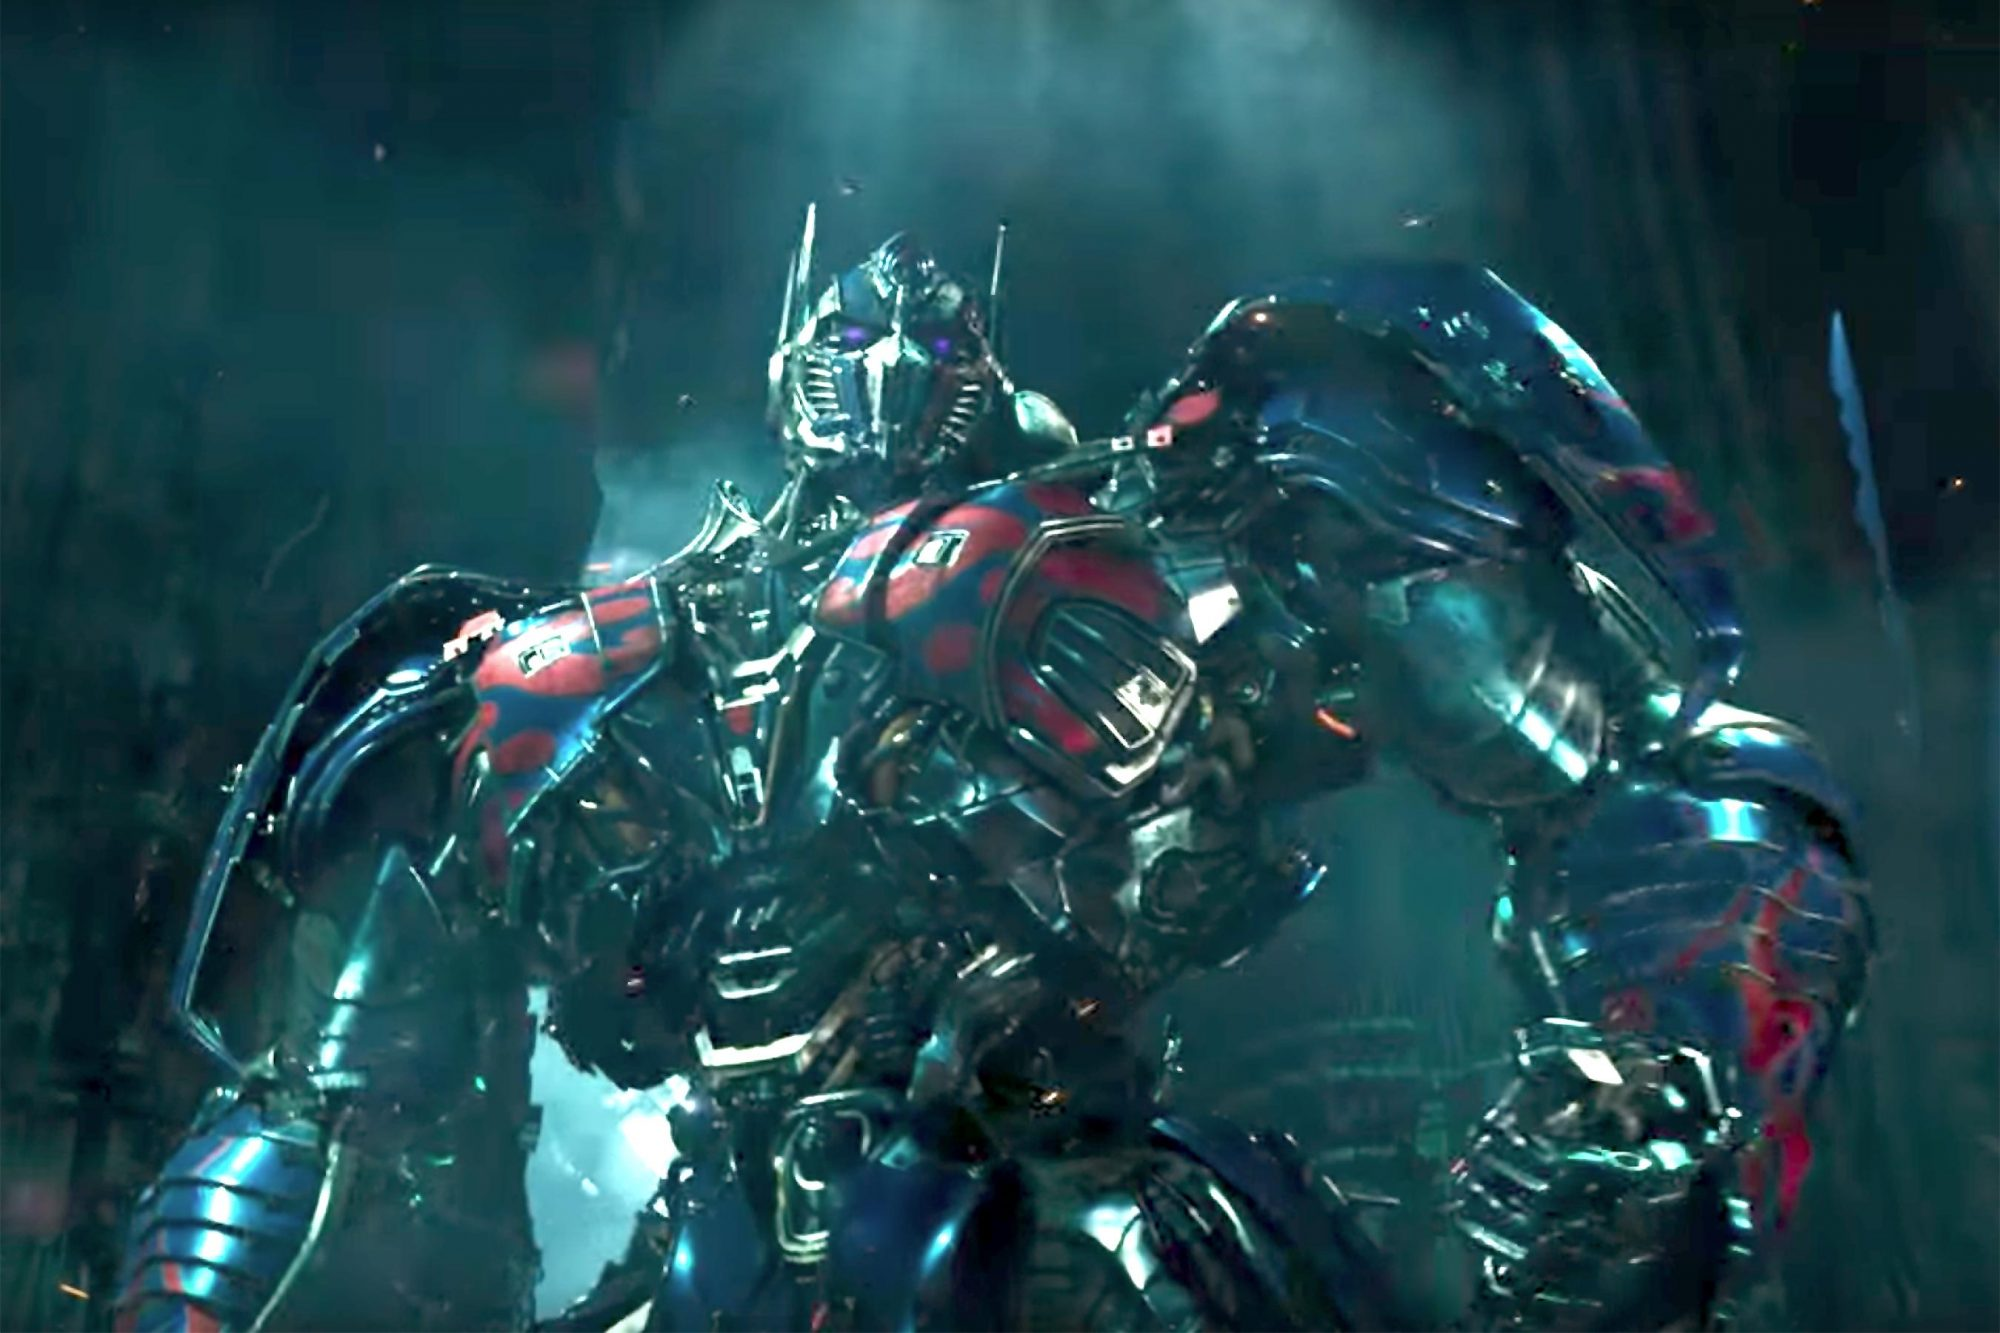 Transformers Badly Transformed: Film Review of Latest Michael Bay Film, Transformers